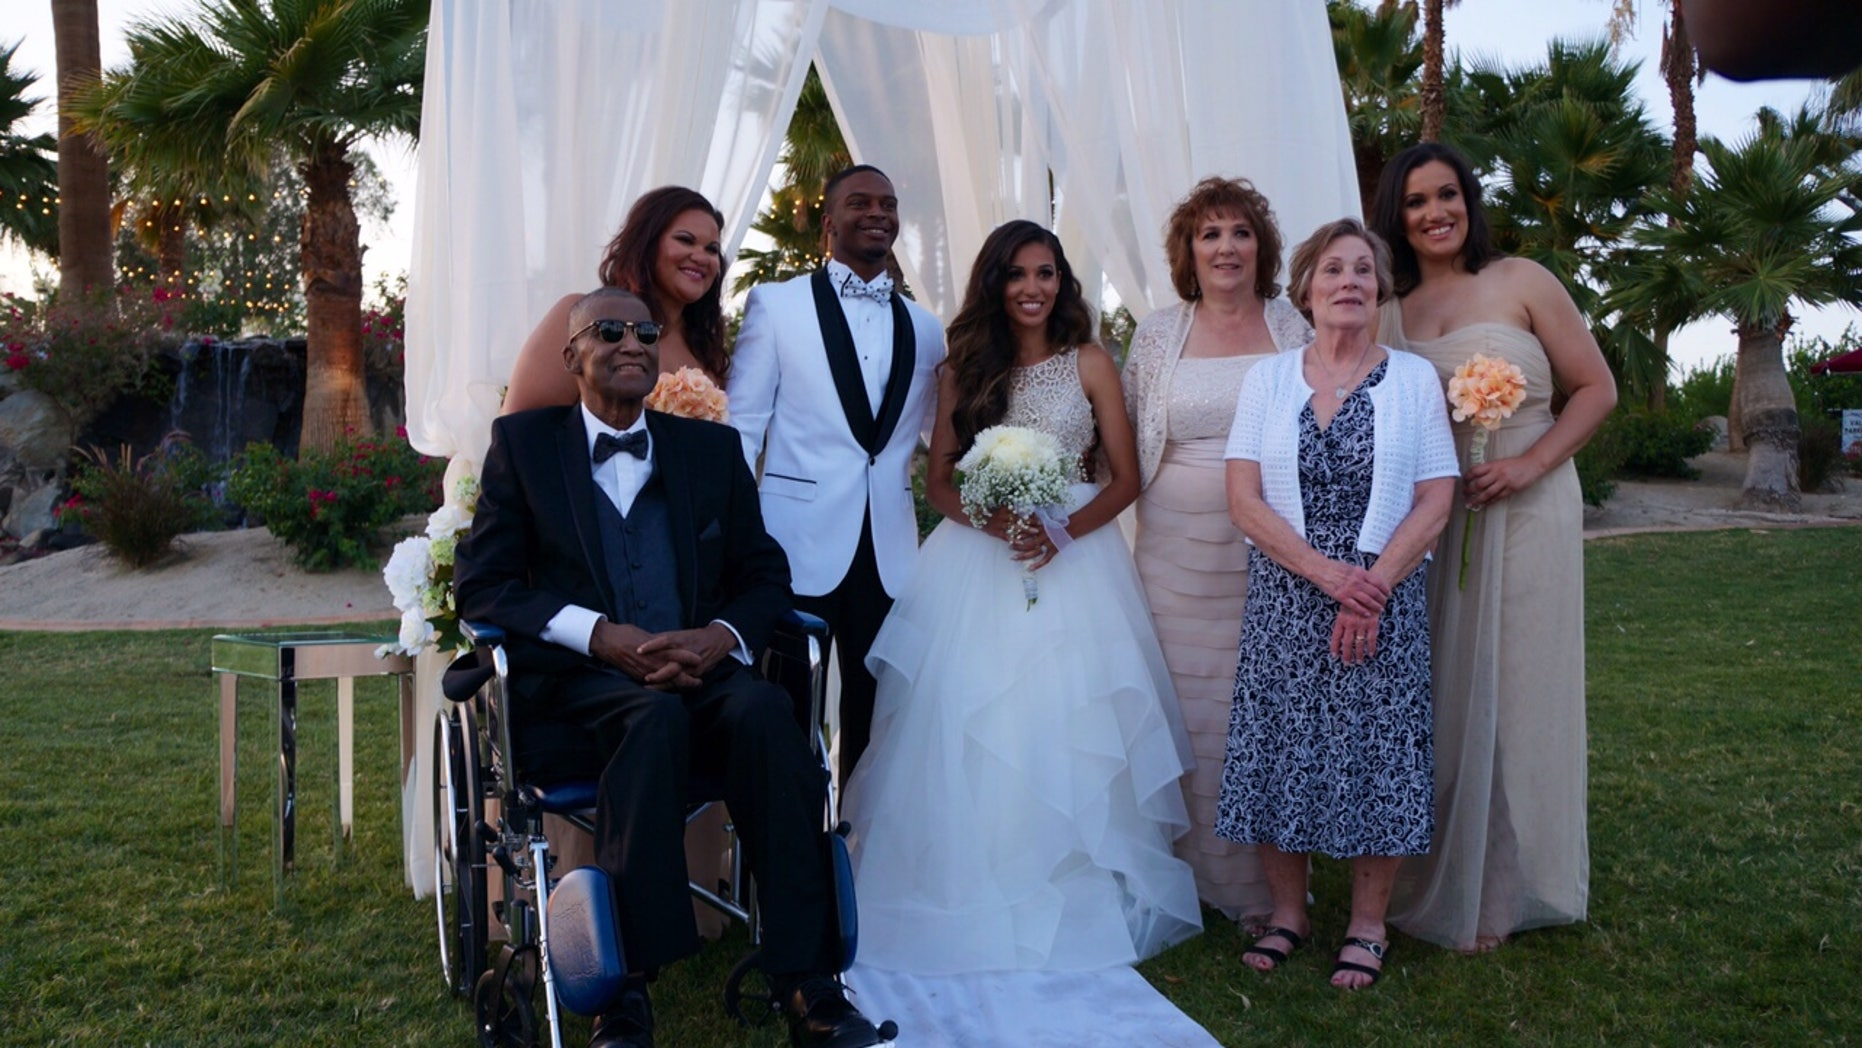 Andre Pearson surprised his daughter Alexandra at her wedding in California.